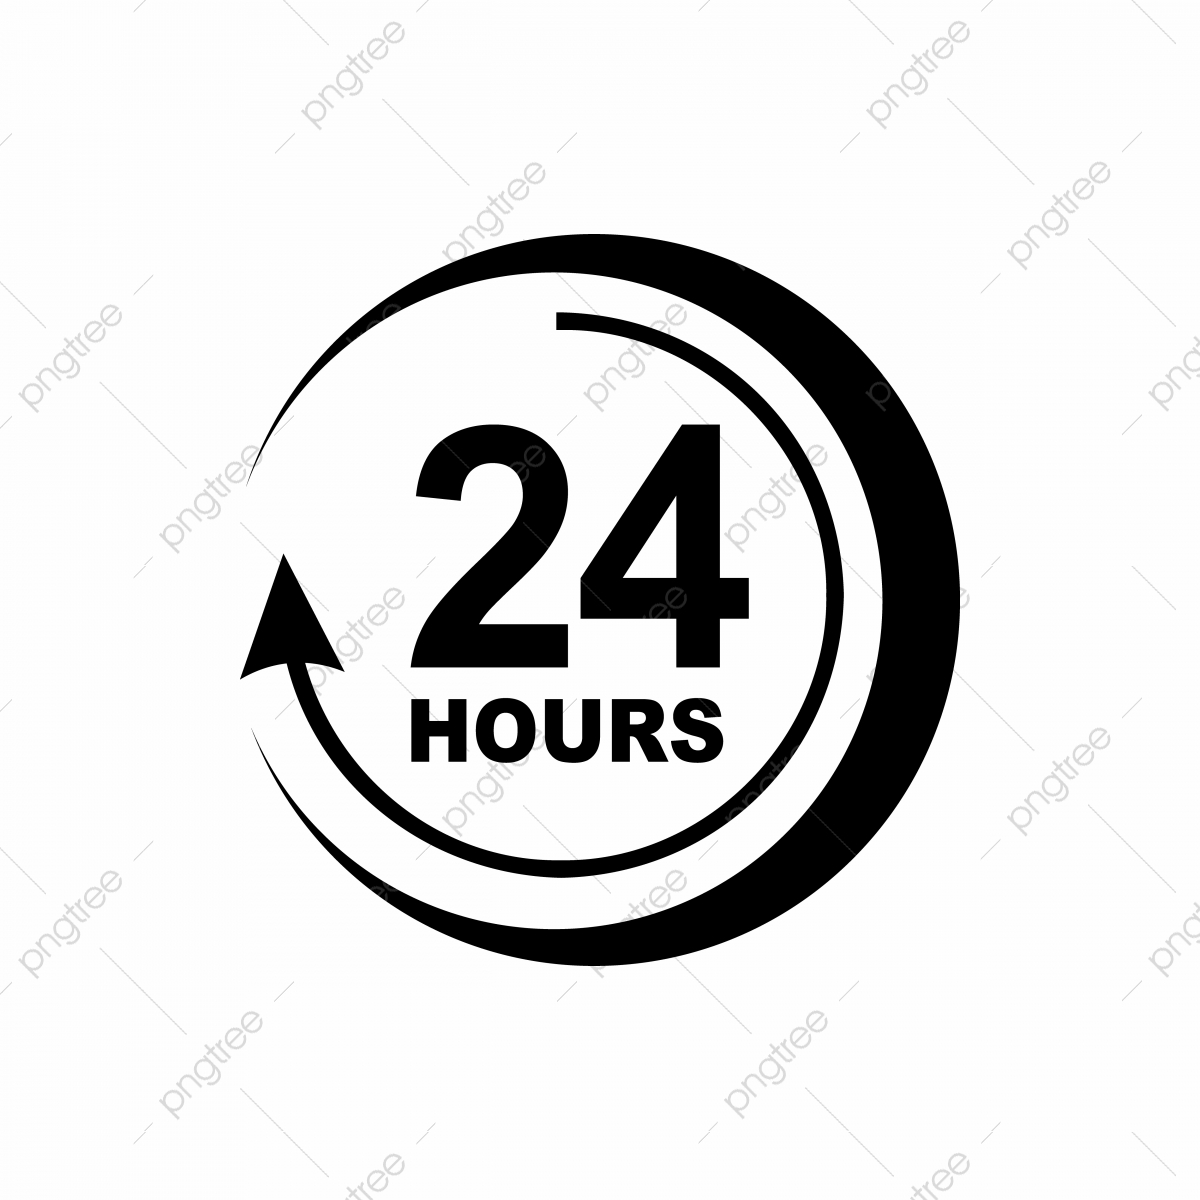 24 hours png images vector and psd files free download on pngtree https pngtree com freepng 24 hours support icon simple style 5080354 html